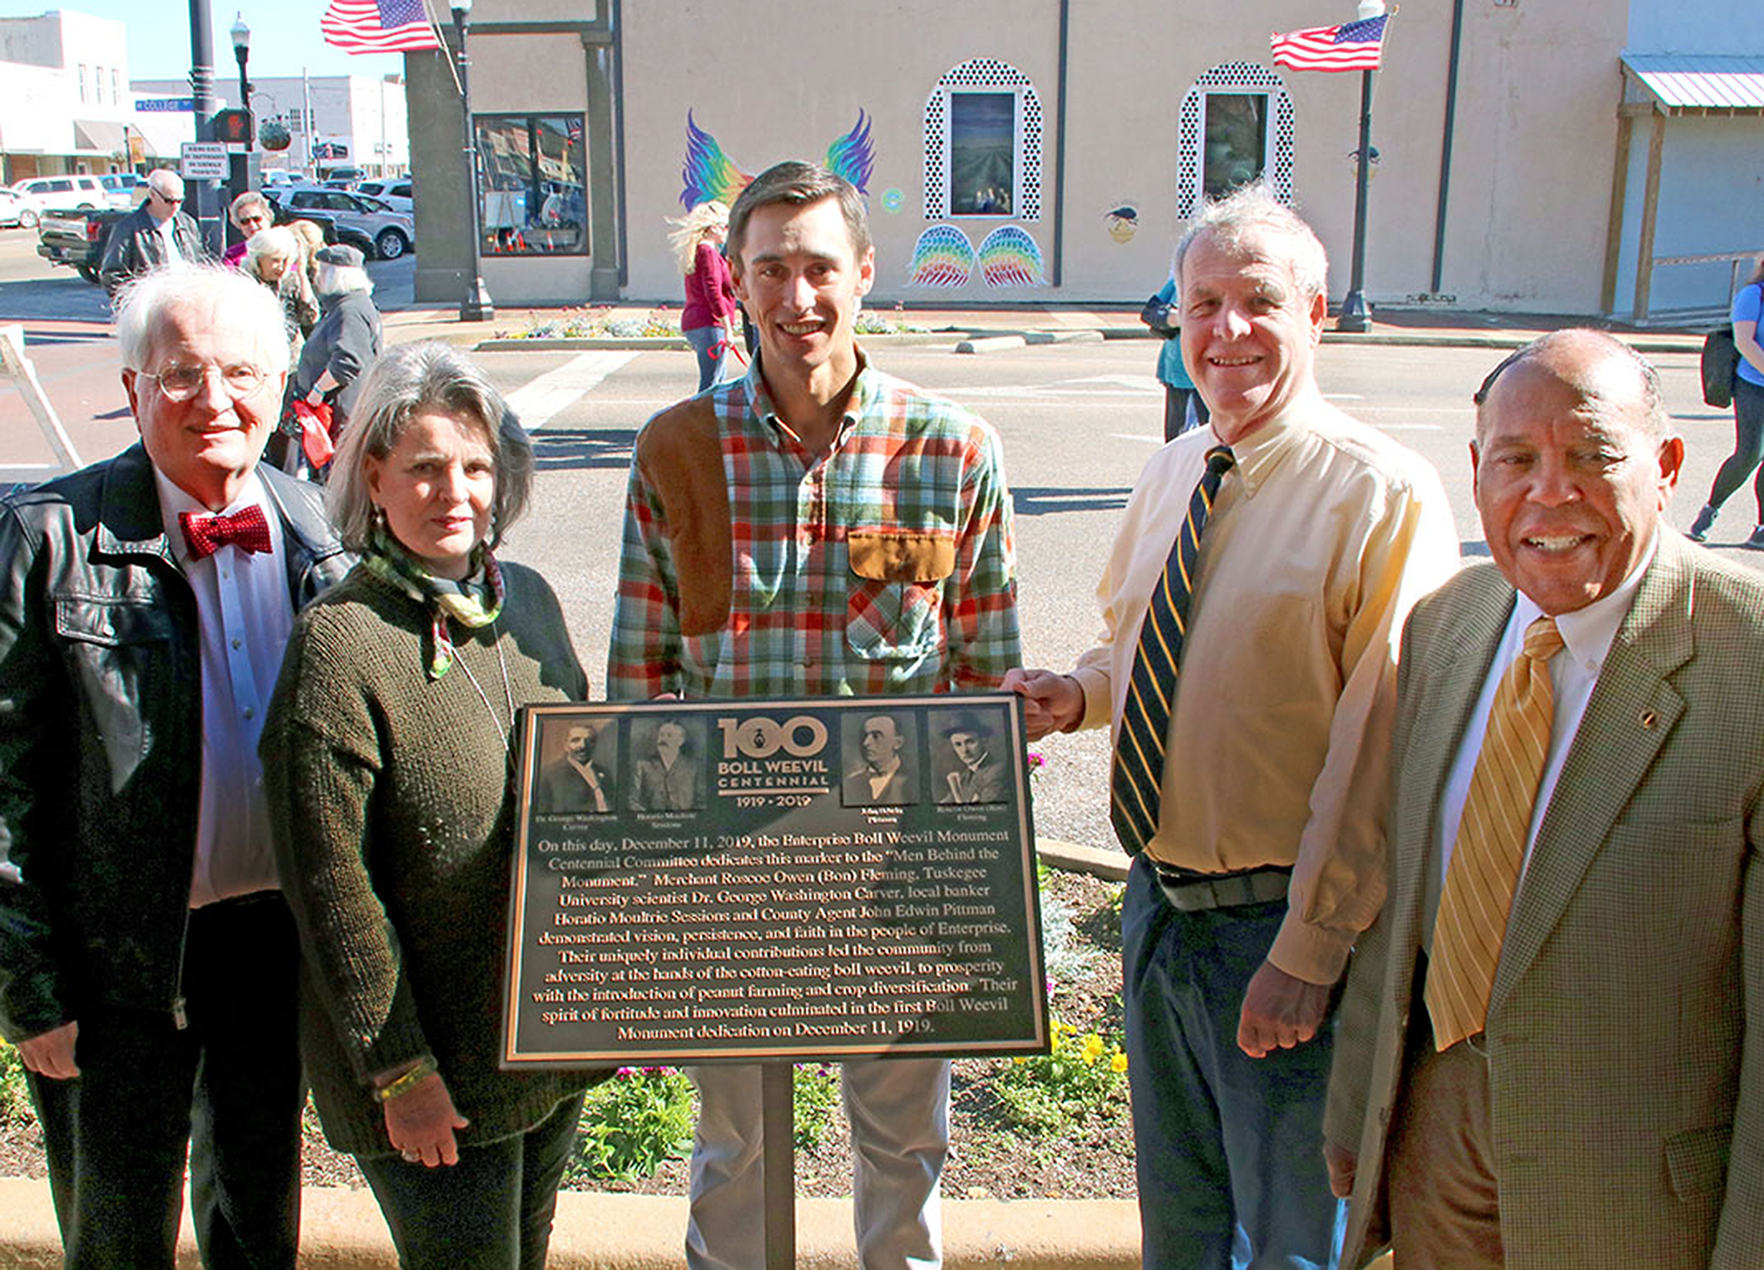 Enterprise's civic and municipal leaders dedicate the Centennial Memorial on Feb. 29; photo courtesy of City of Enterprise